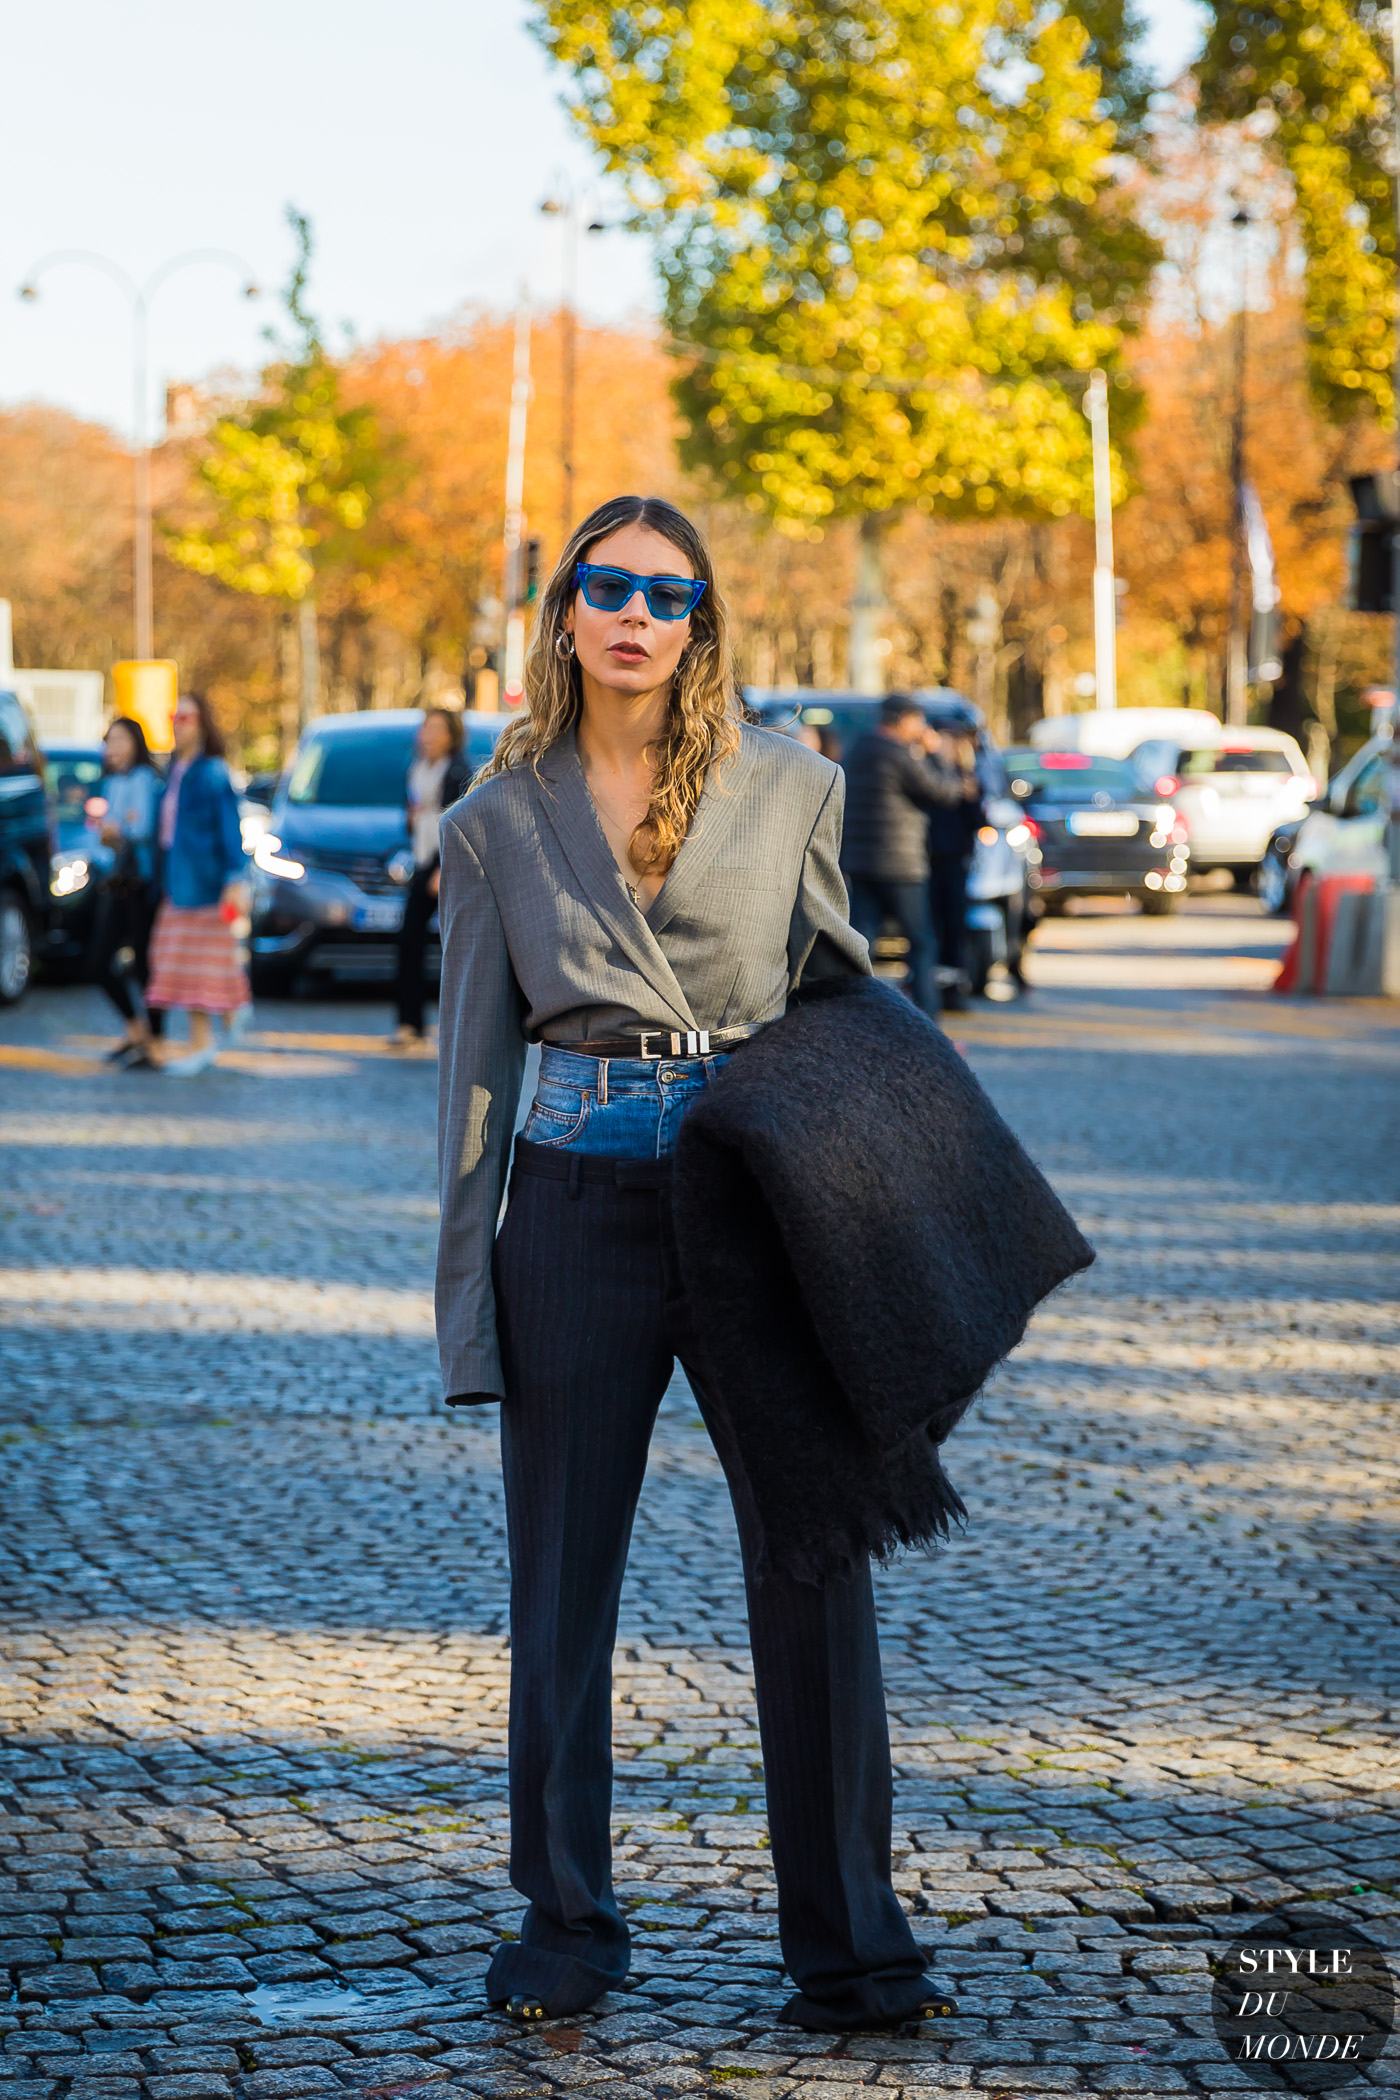 Irina Lakicevic by STYLEDUMONDE Street Style Fashion Photography_48A2482